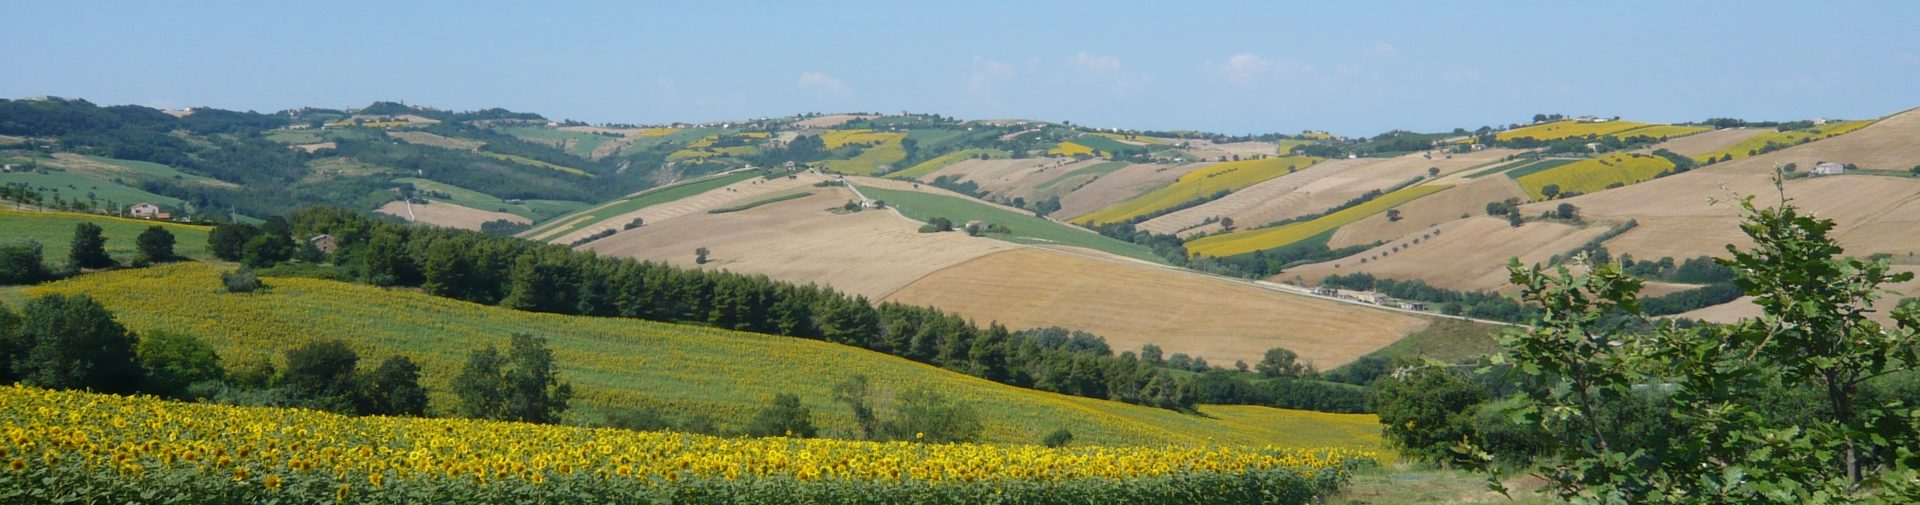 Landscape of the Marches